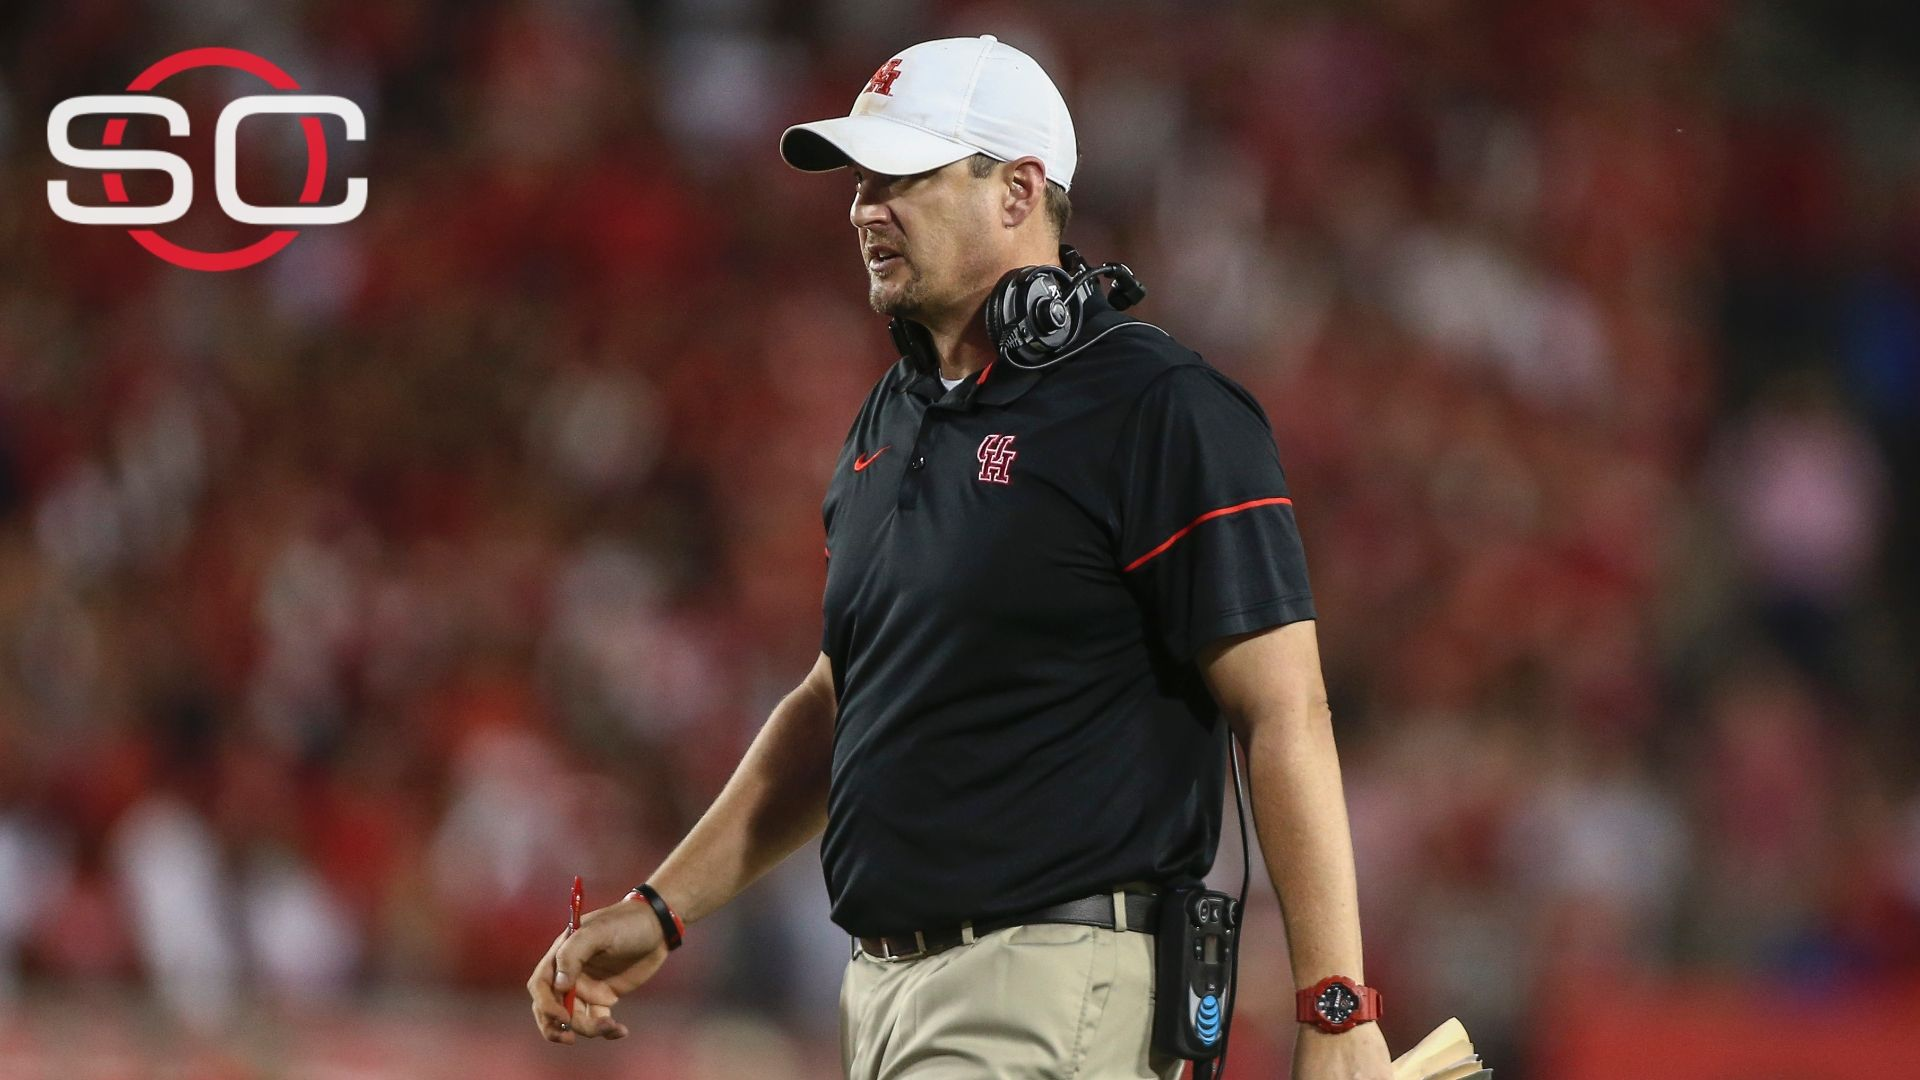 Why is LSU a good fit for Herman?